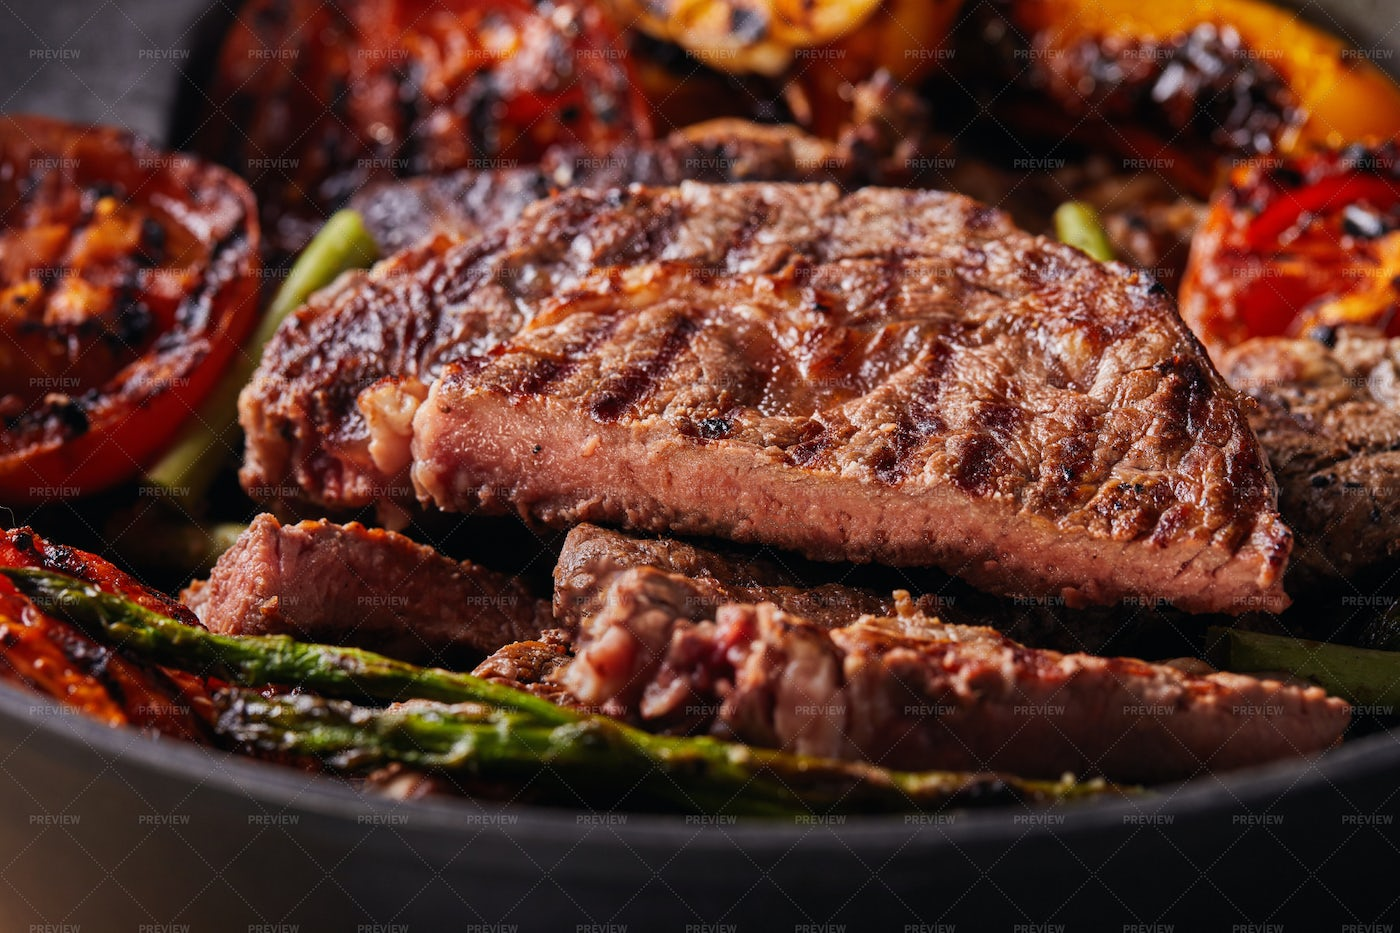 Grilled Beef Steak In A Black Pan: Stock Photos